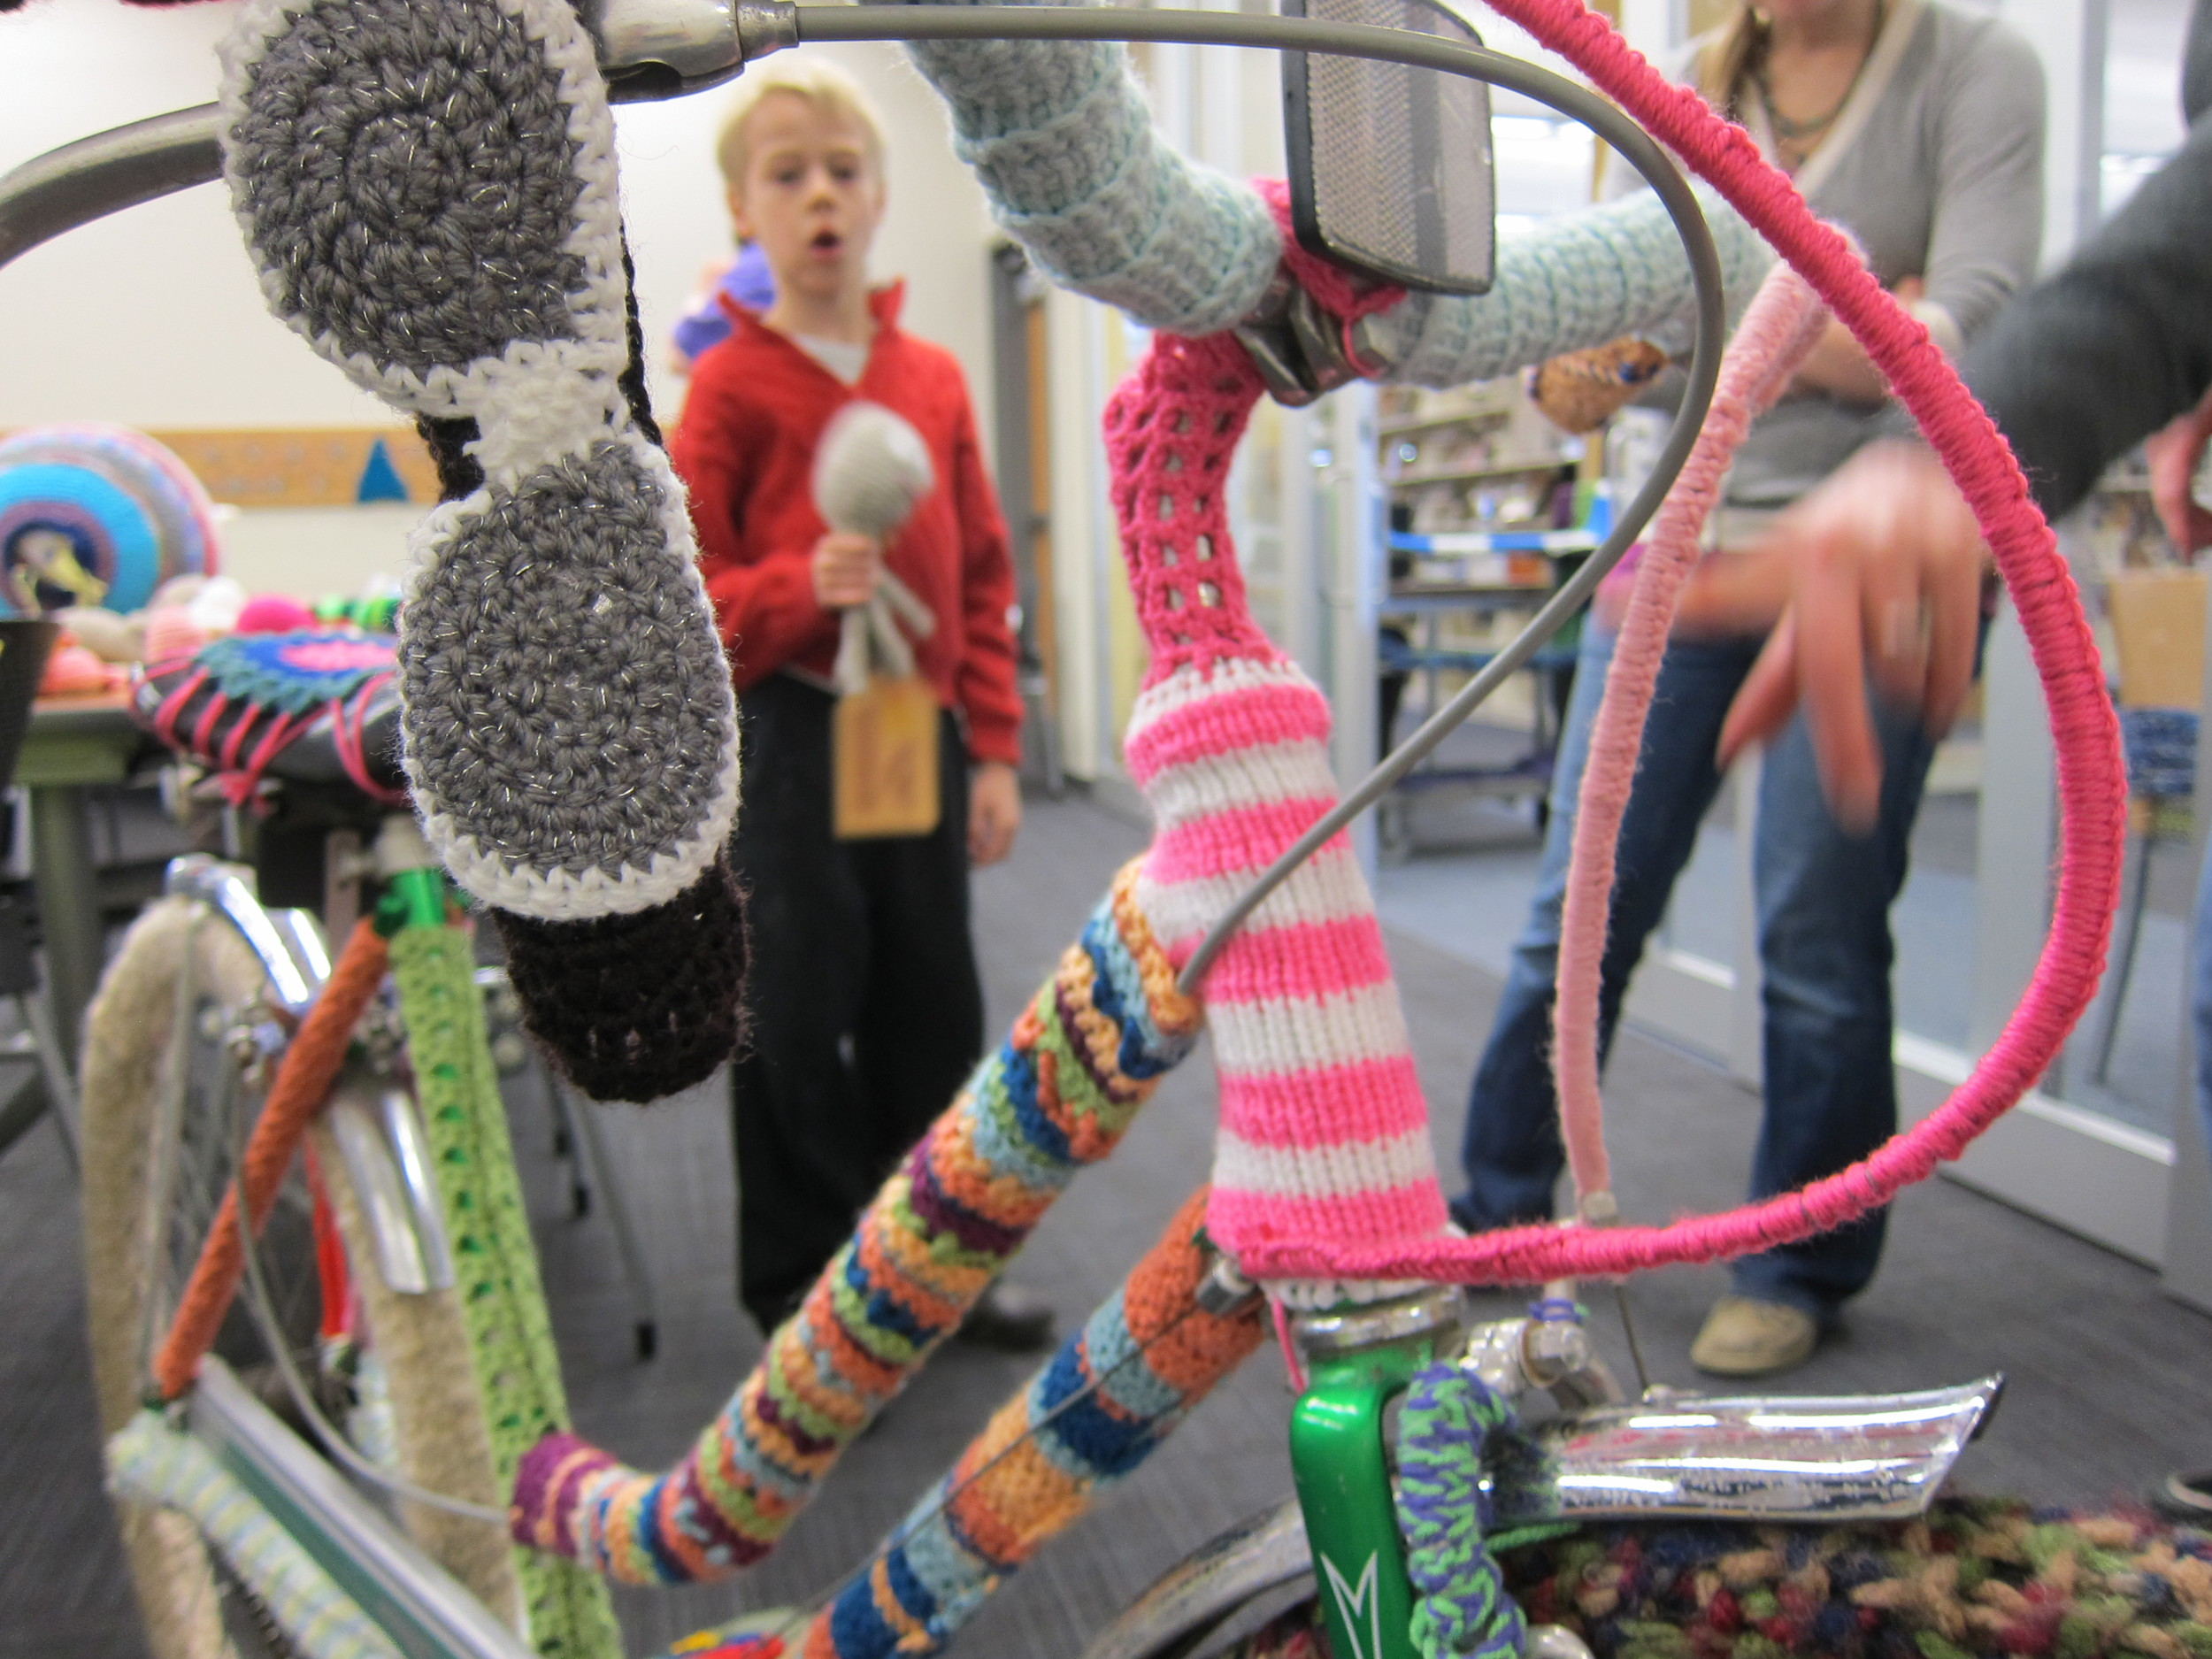 During a yarn knitting / bombing session at the Bubbler various object were covered in yarn - from book carts to this bike.